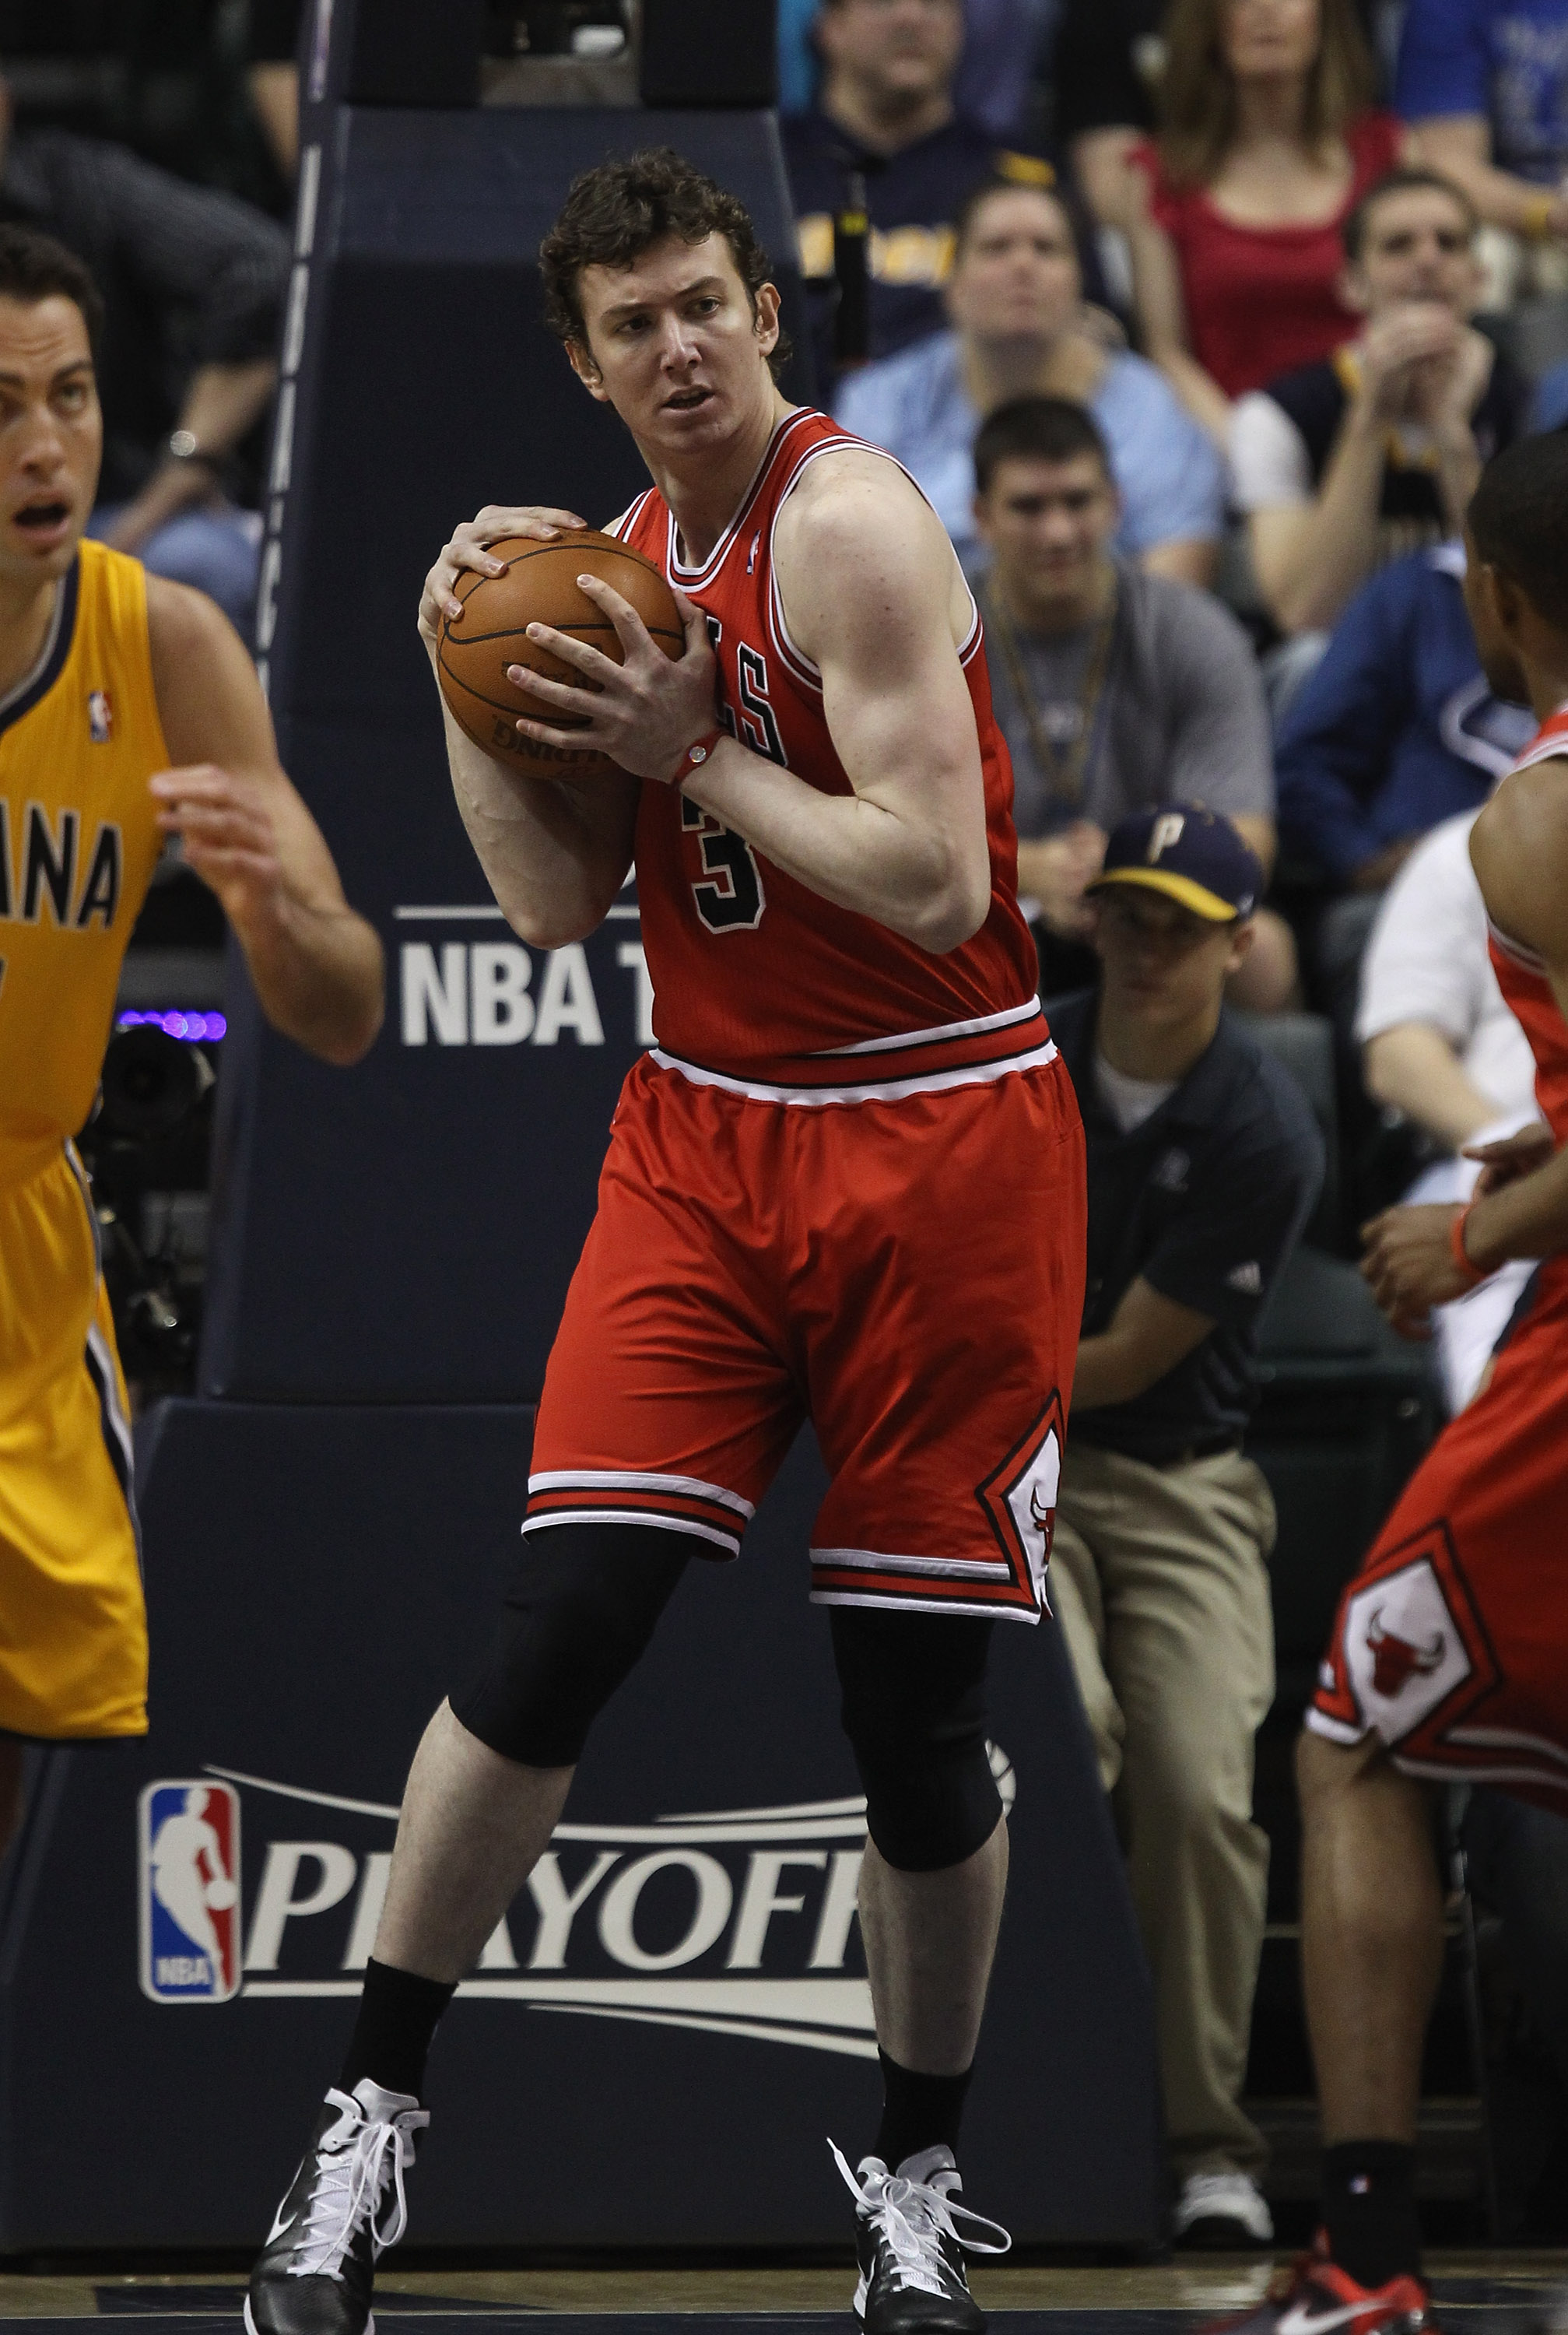 INDIANAPOLIS, IN - APRIL 23: Omer Asik #3 of the Chicago Bulls grabs a rebound against the Indiana Pacers in Game Four of the Eastern Conference Quarterfinals in the 2011 NBA Playoffs at Conseco Fieldhouse on April 23, 2011 in Indianapolis, Indiana. The P